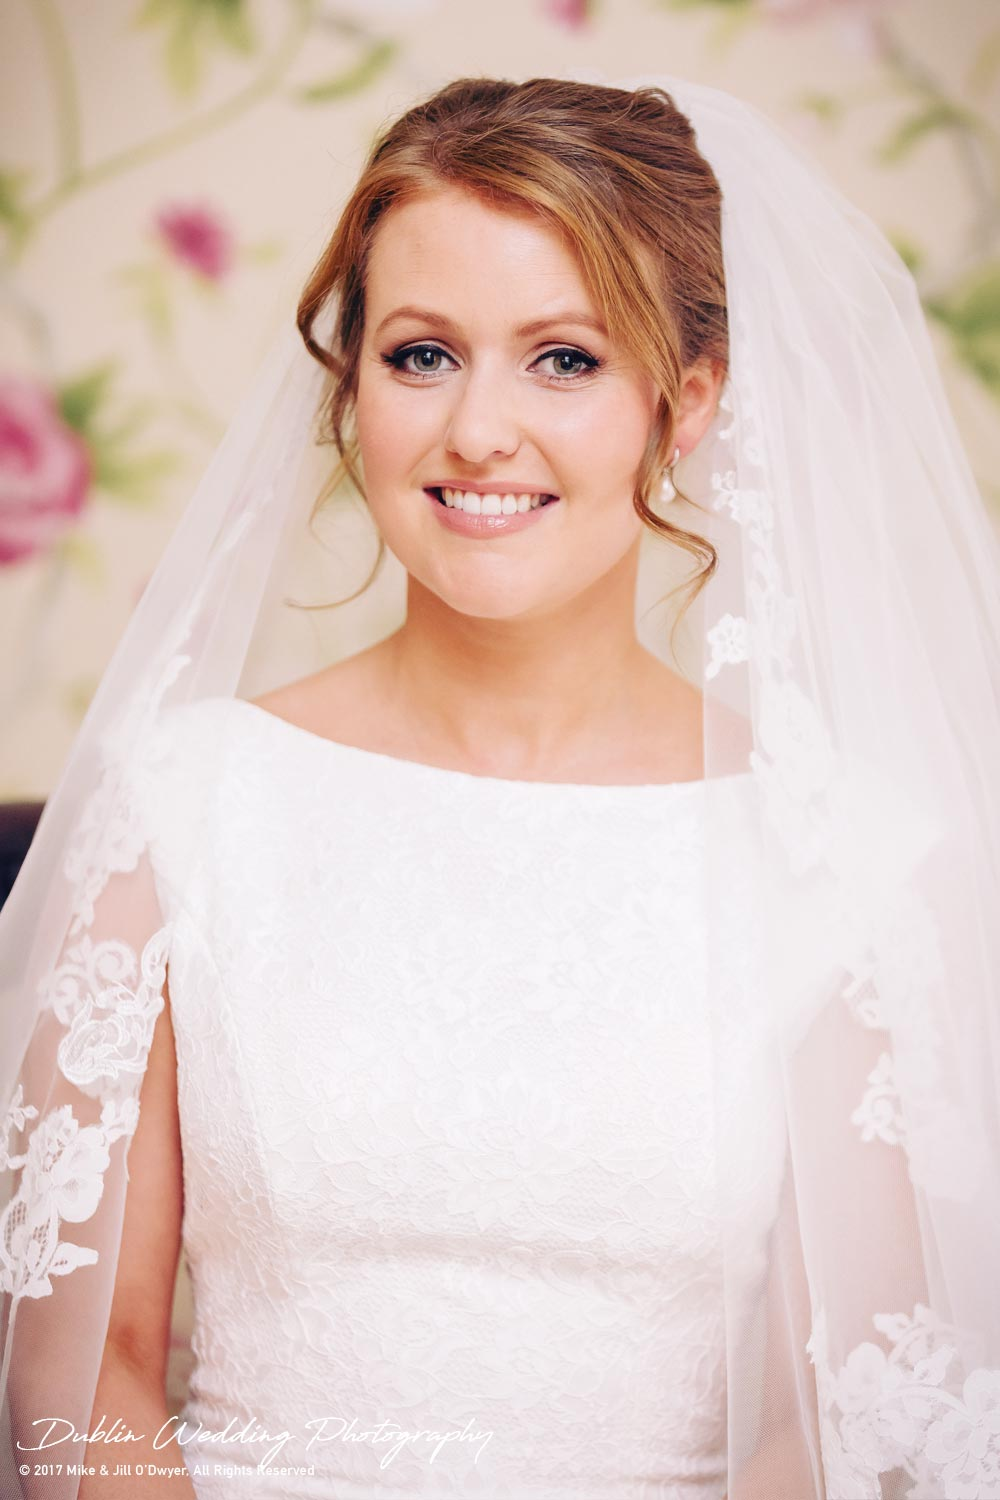 Tinakilly House Wedding Photographer: Bride Portrait in House